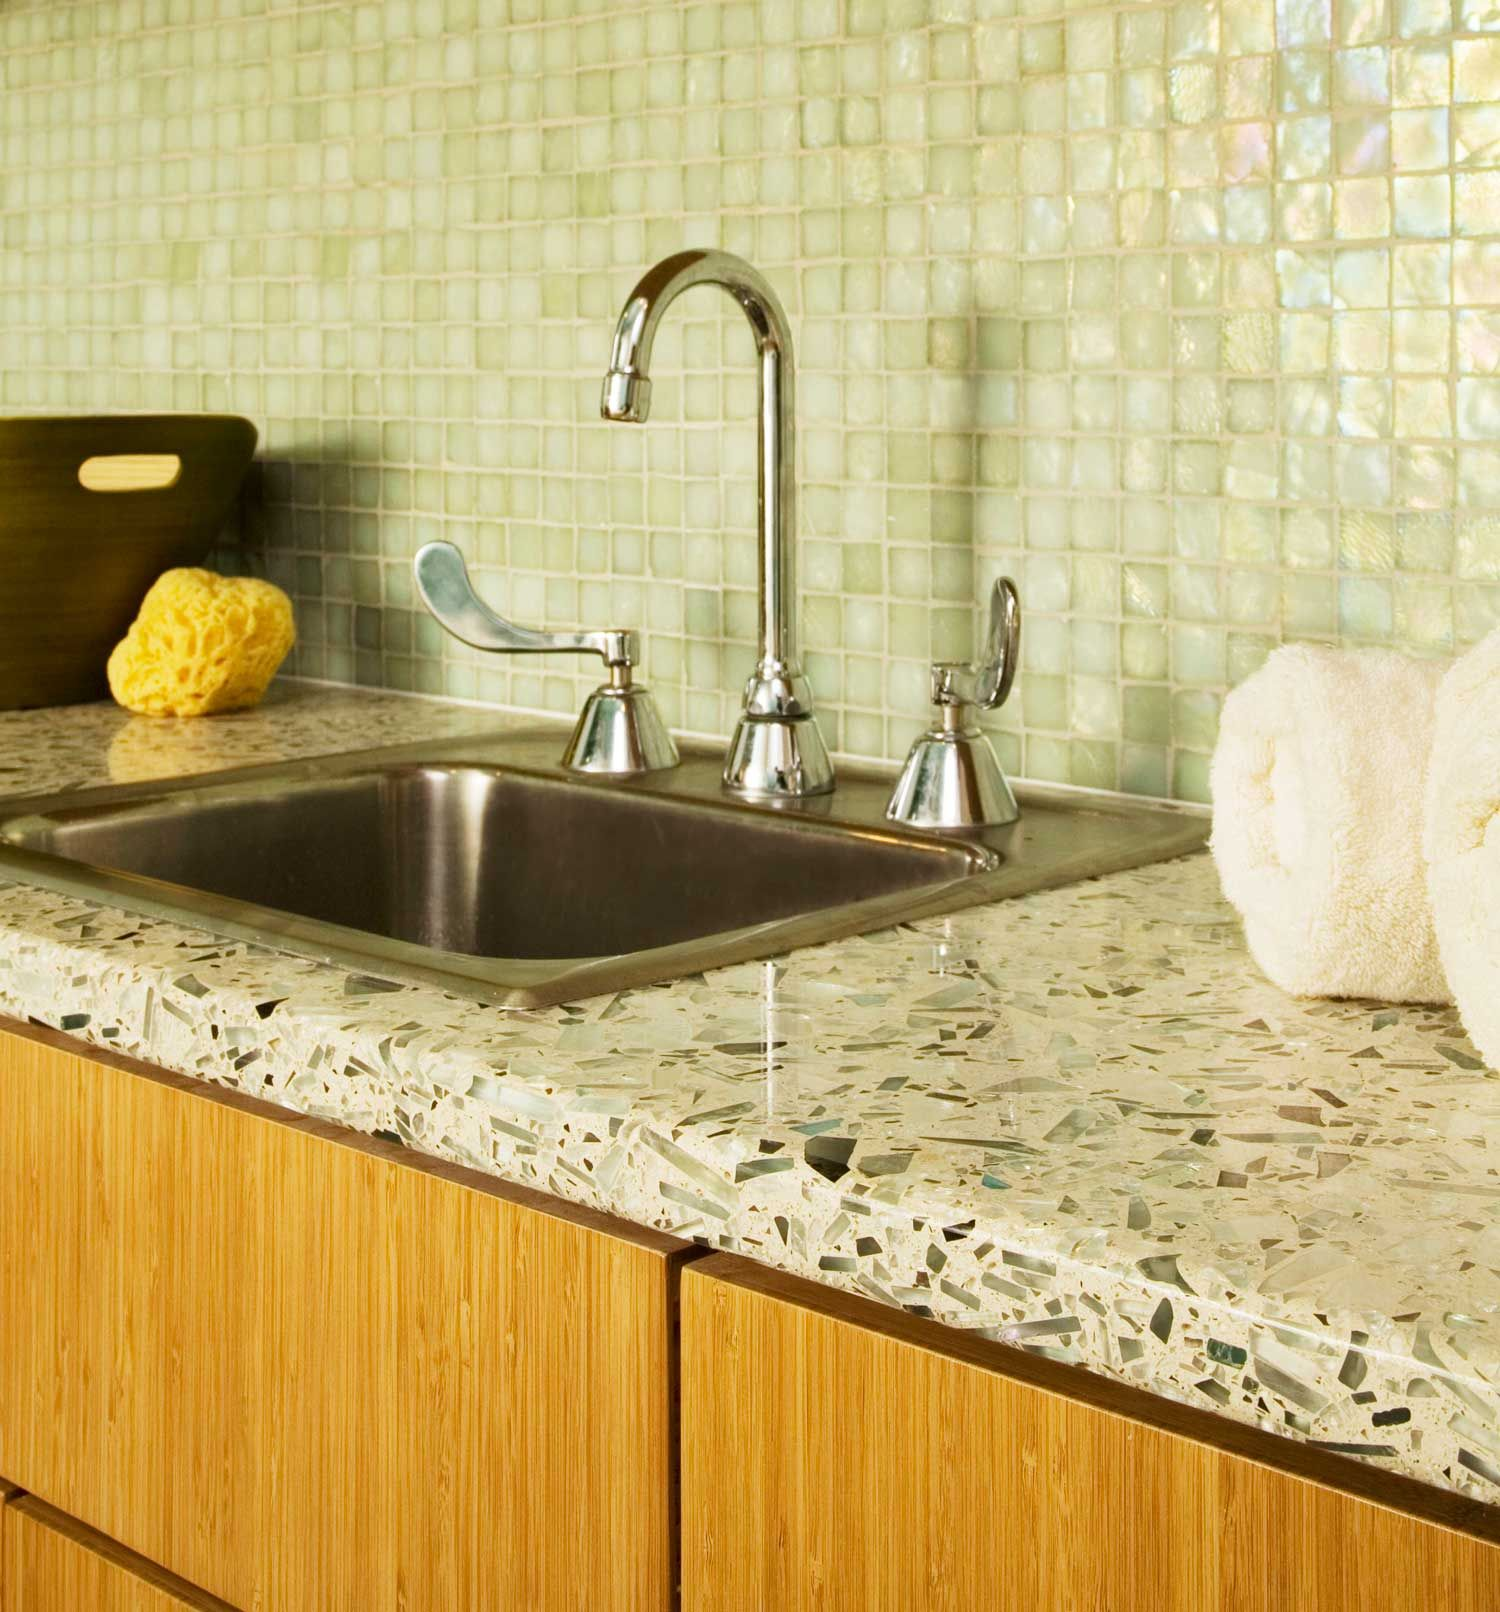 harbor watch bay countertops marble florida youtube refinishing area clearwater tampa palm quartz